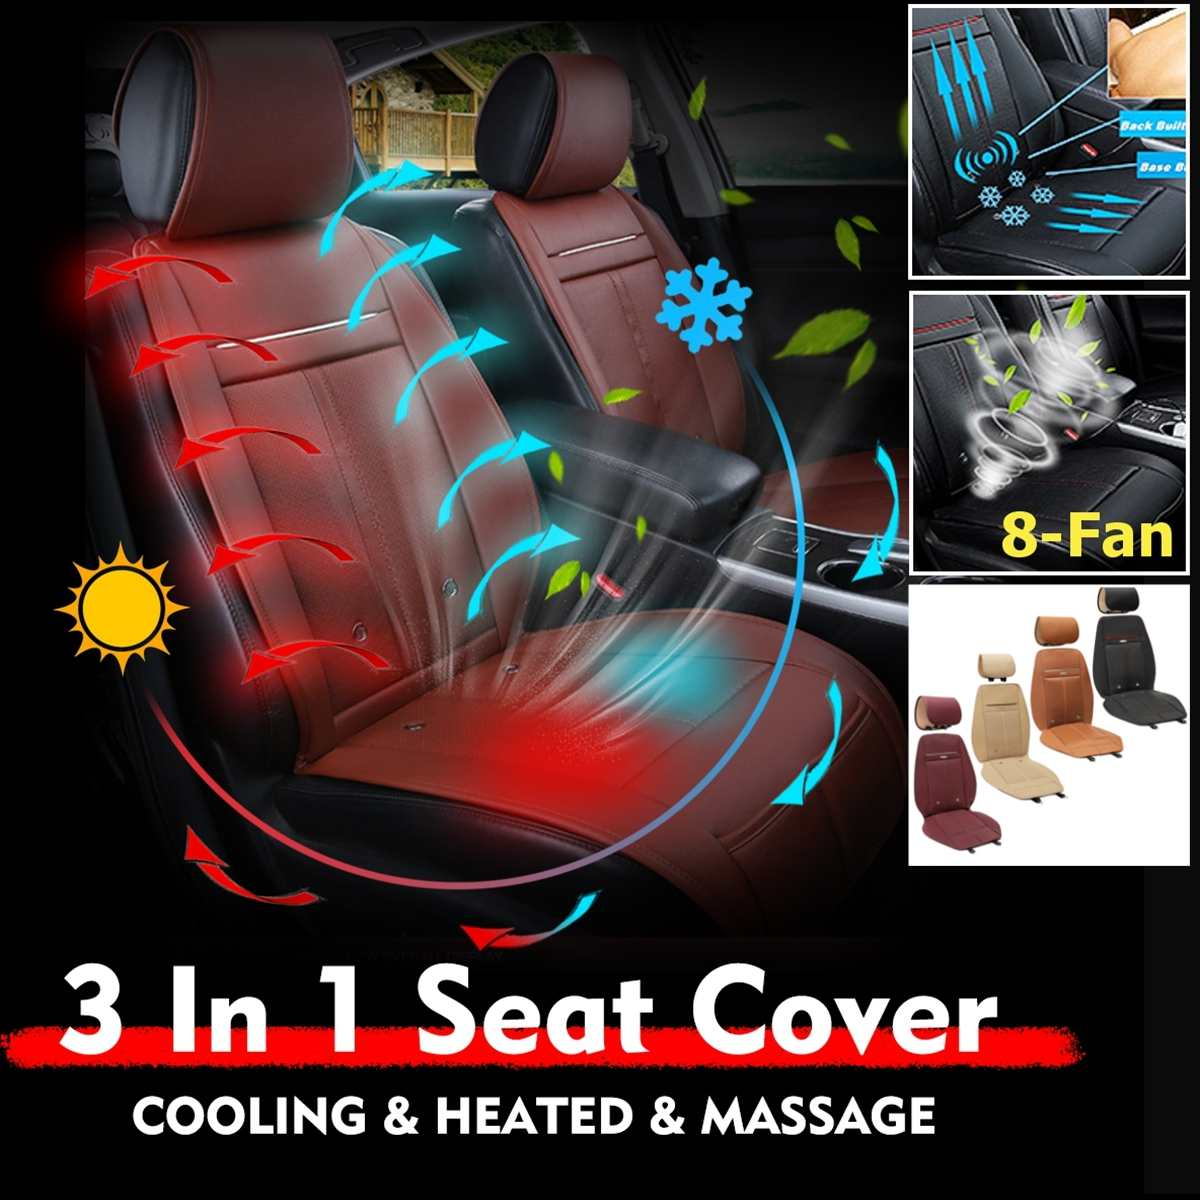 Universal 3 In 1 Car Seat Cover Cushion Cooling & Warm Heated & Massage Chair With 8 Fan Multifunction Automobiles Seat Covers